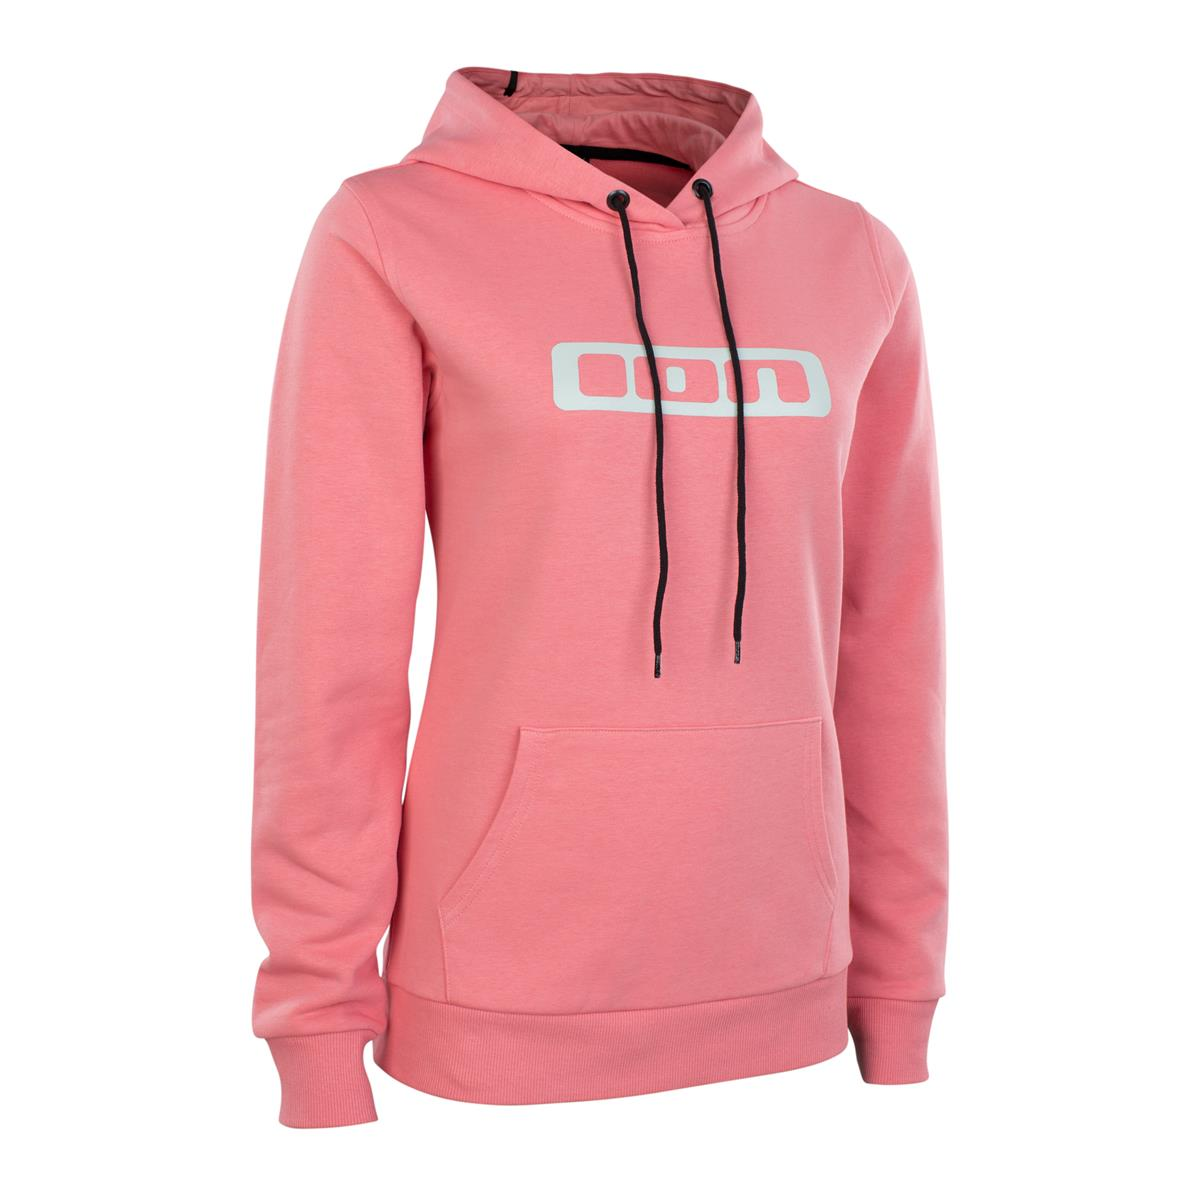 hoodies for girls